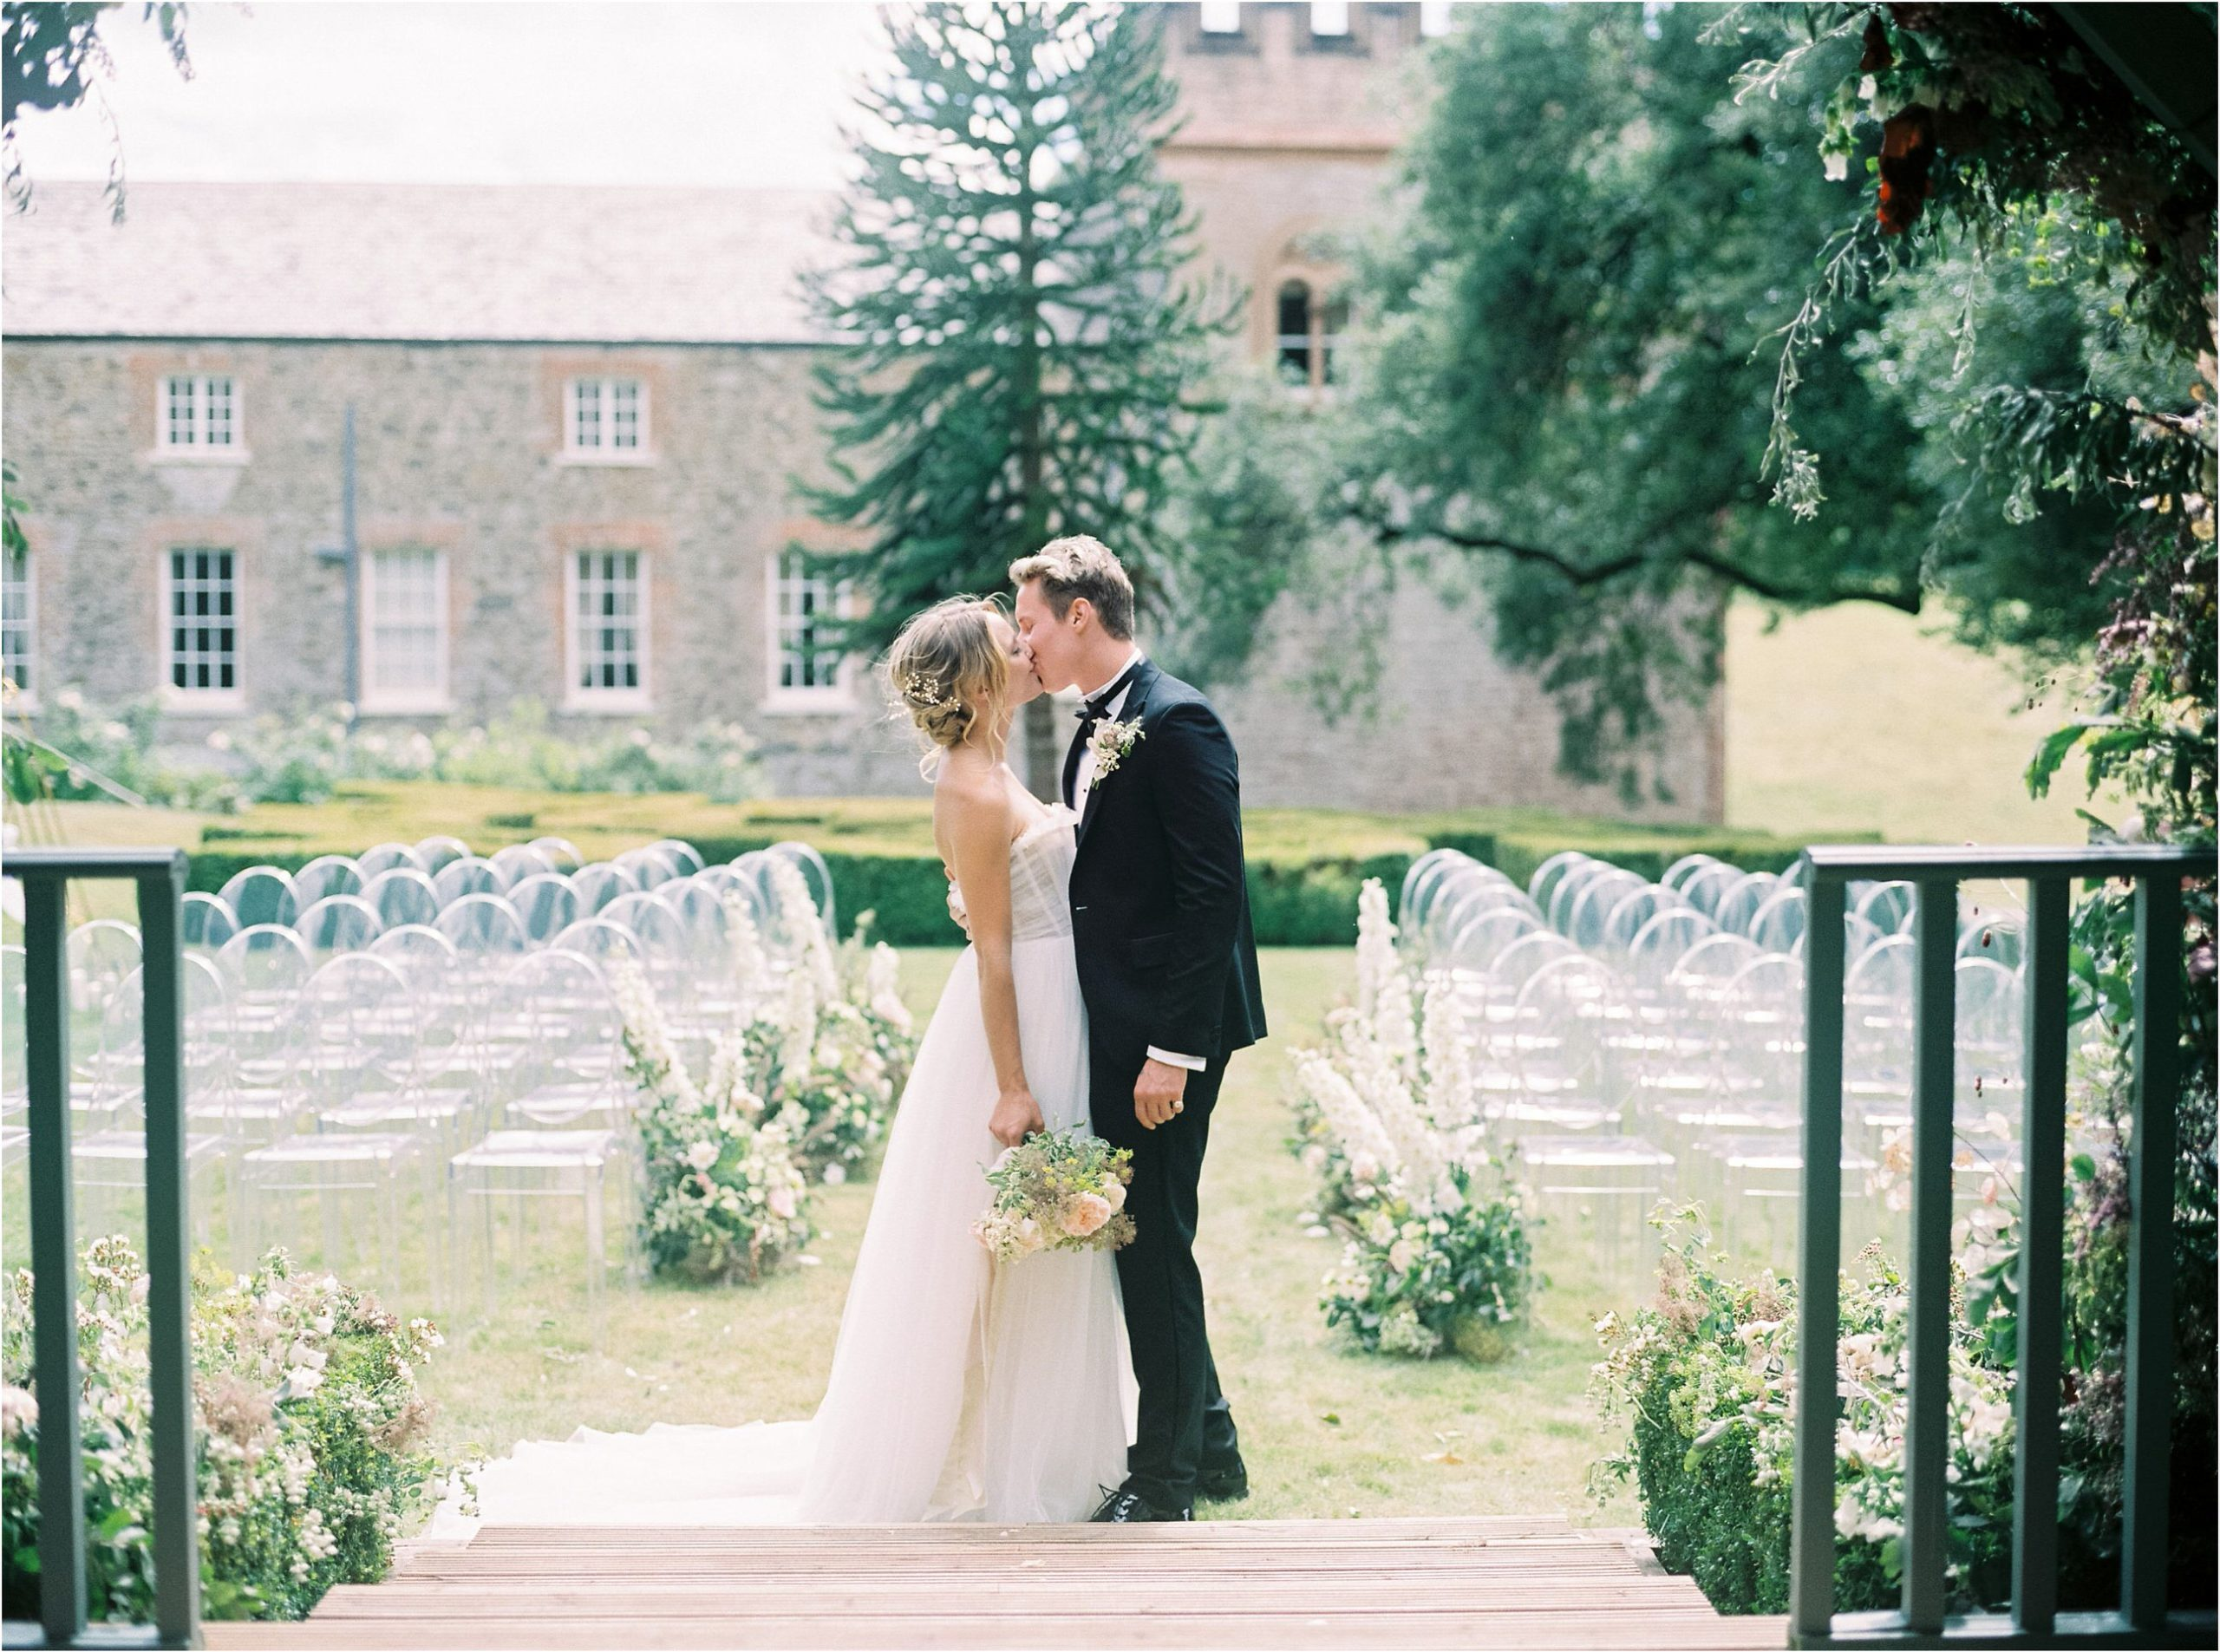 First kiss in outdoor wedding ceremony